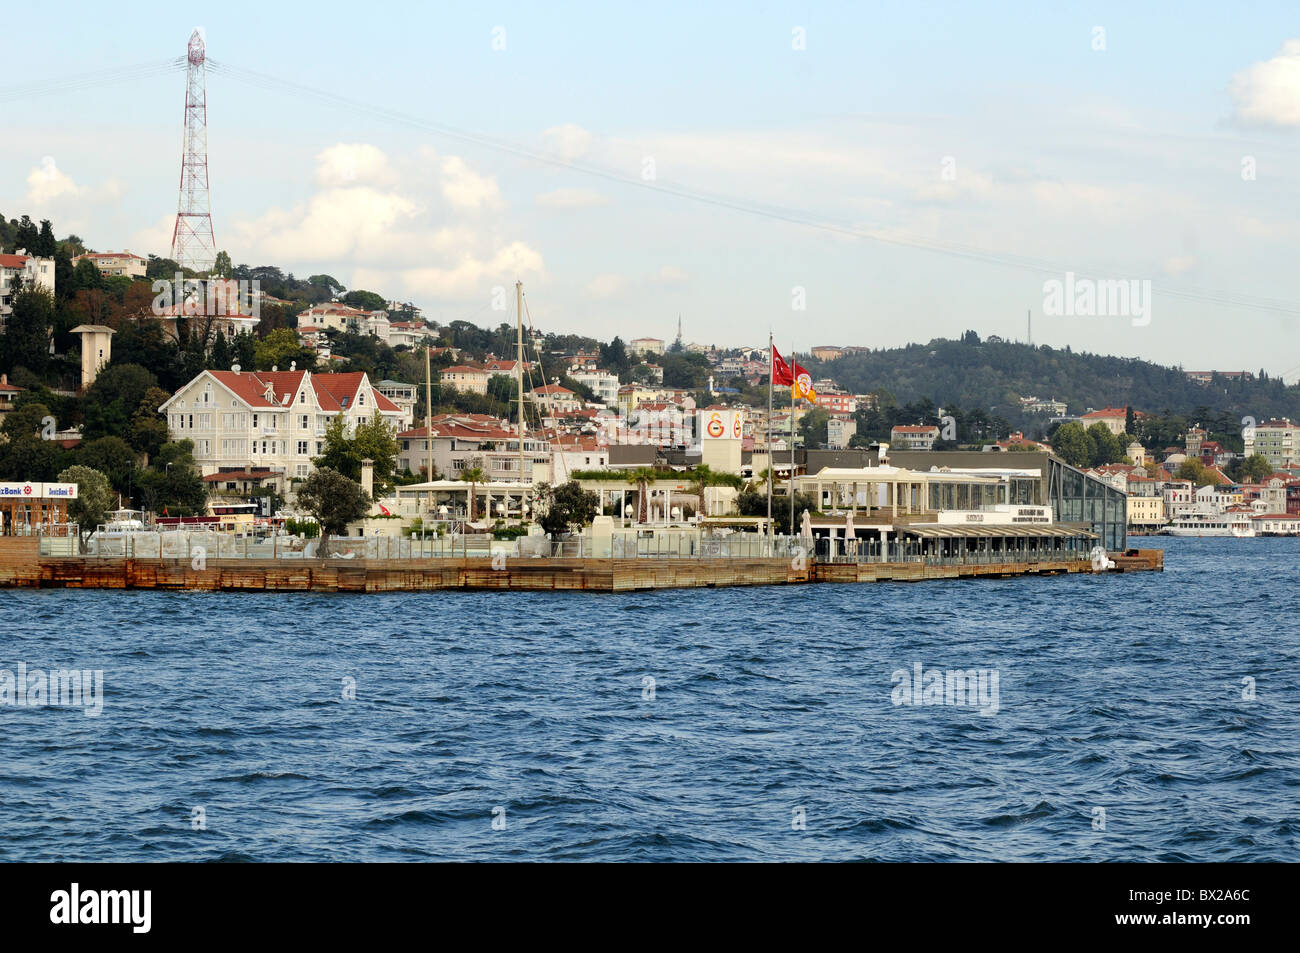 Galatasaray Adasi, a tiny island owned by the Galatasaray Sports Club, viewed from the Bosphorus, Istanbul, Turkey - Stock Image